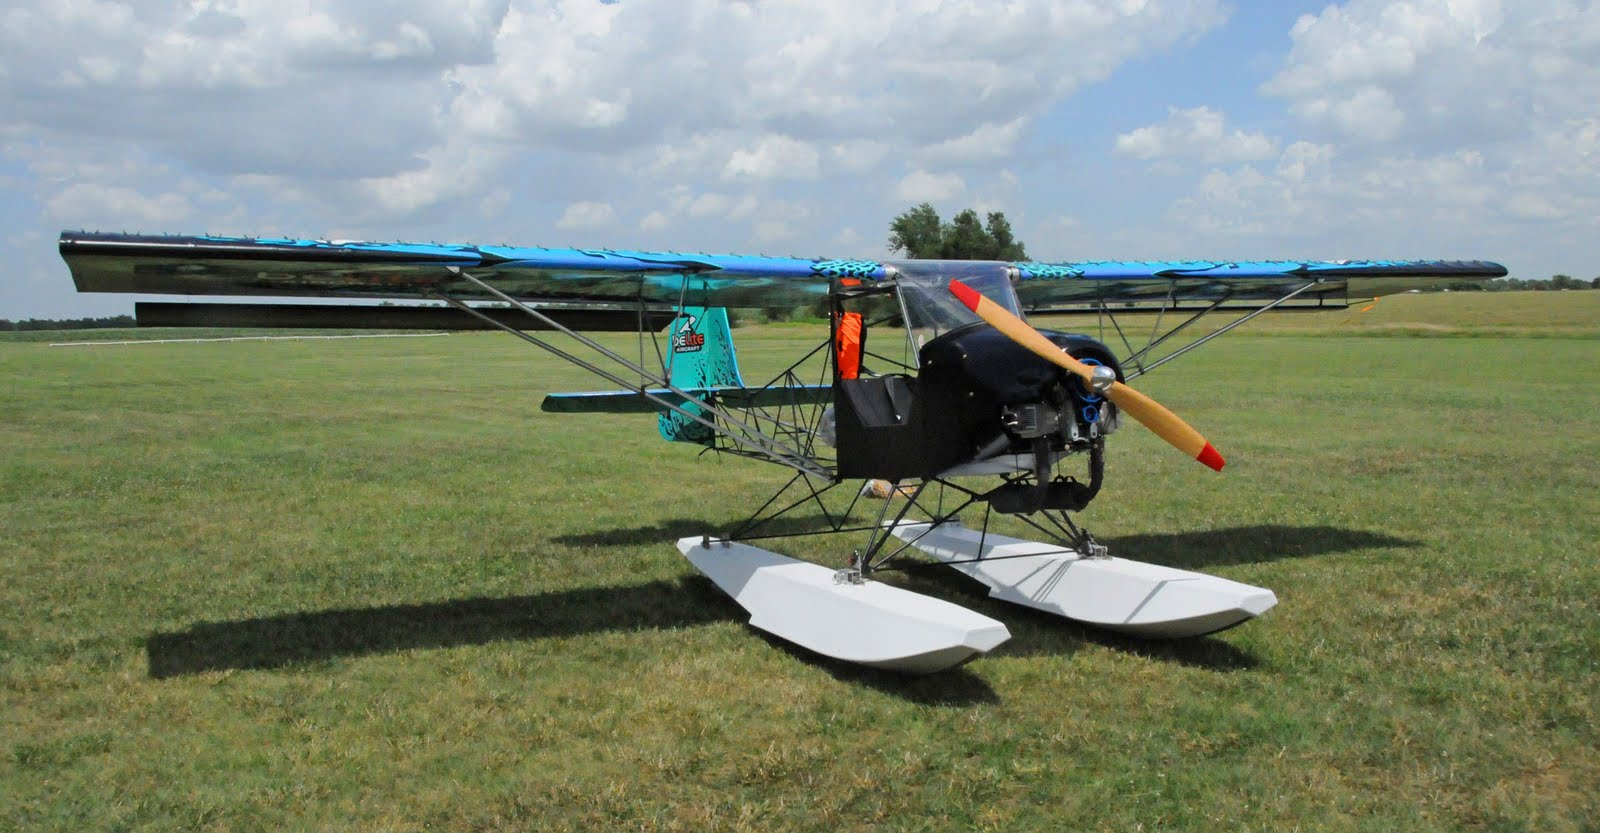 aircraft-for-sale-ultralights html in hysicid github com | source